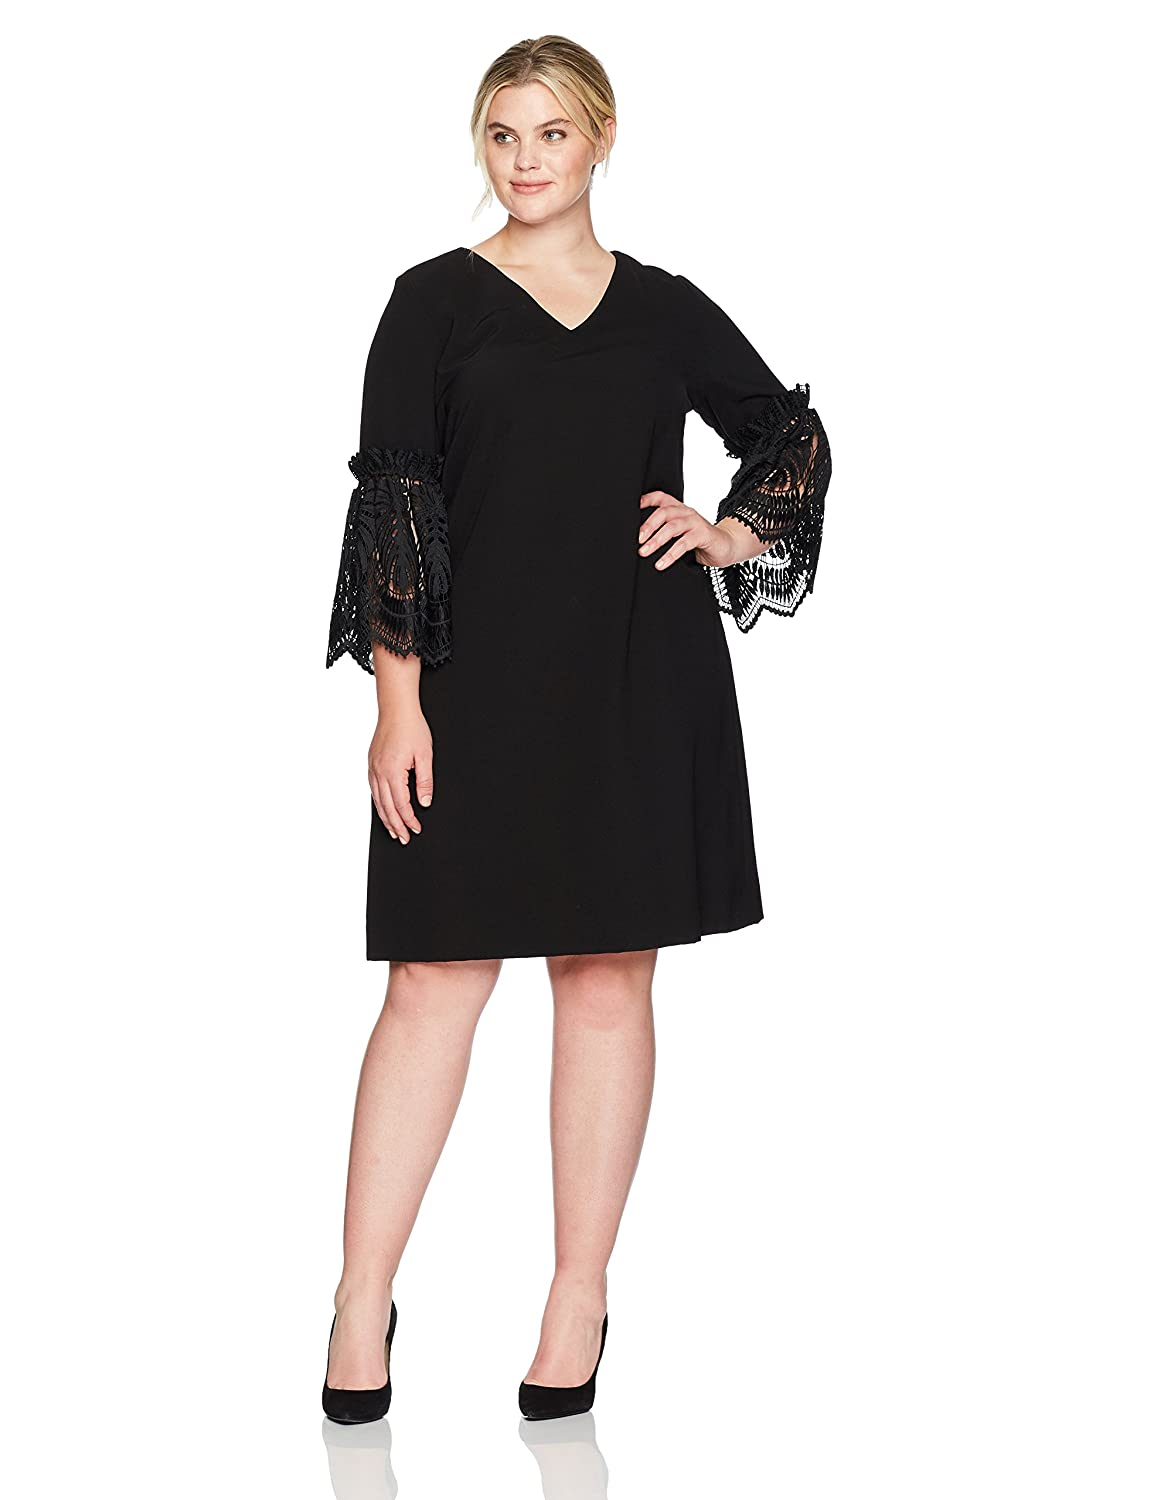 a05609e0ad27 Tahari by Arthur S. Levine Women's Plus Size V Neck Shift Dress with Lace  Bell Sleeve Details at Amazon Women's Clothing store: